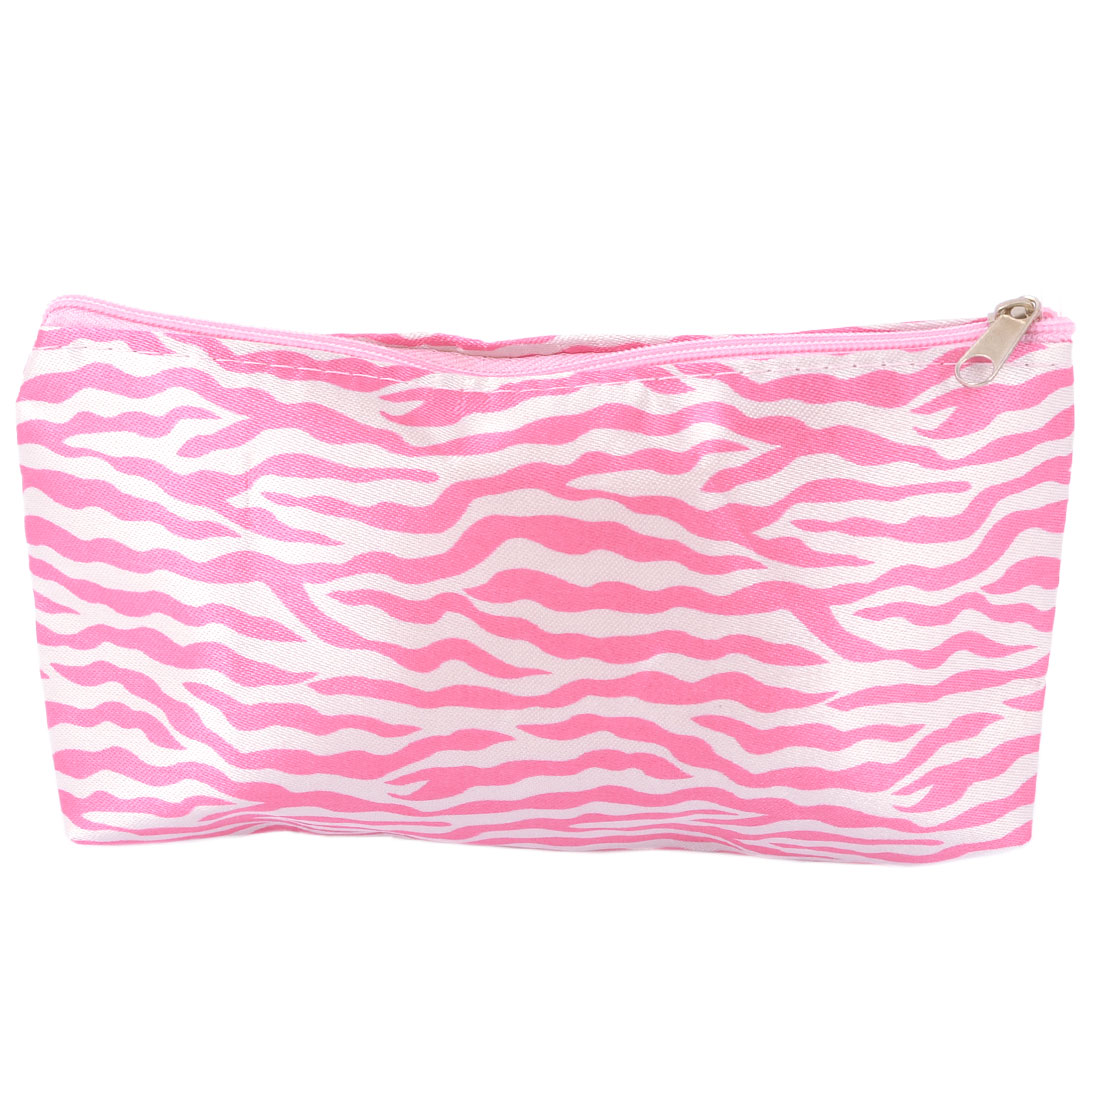 Pink Black Zebra Style Zippered Paillette Makeup Bag for Women